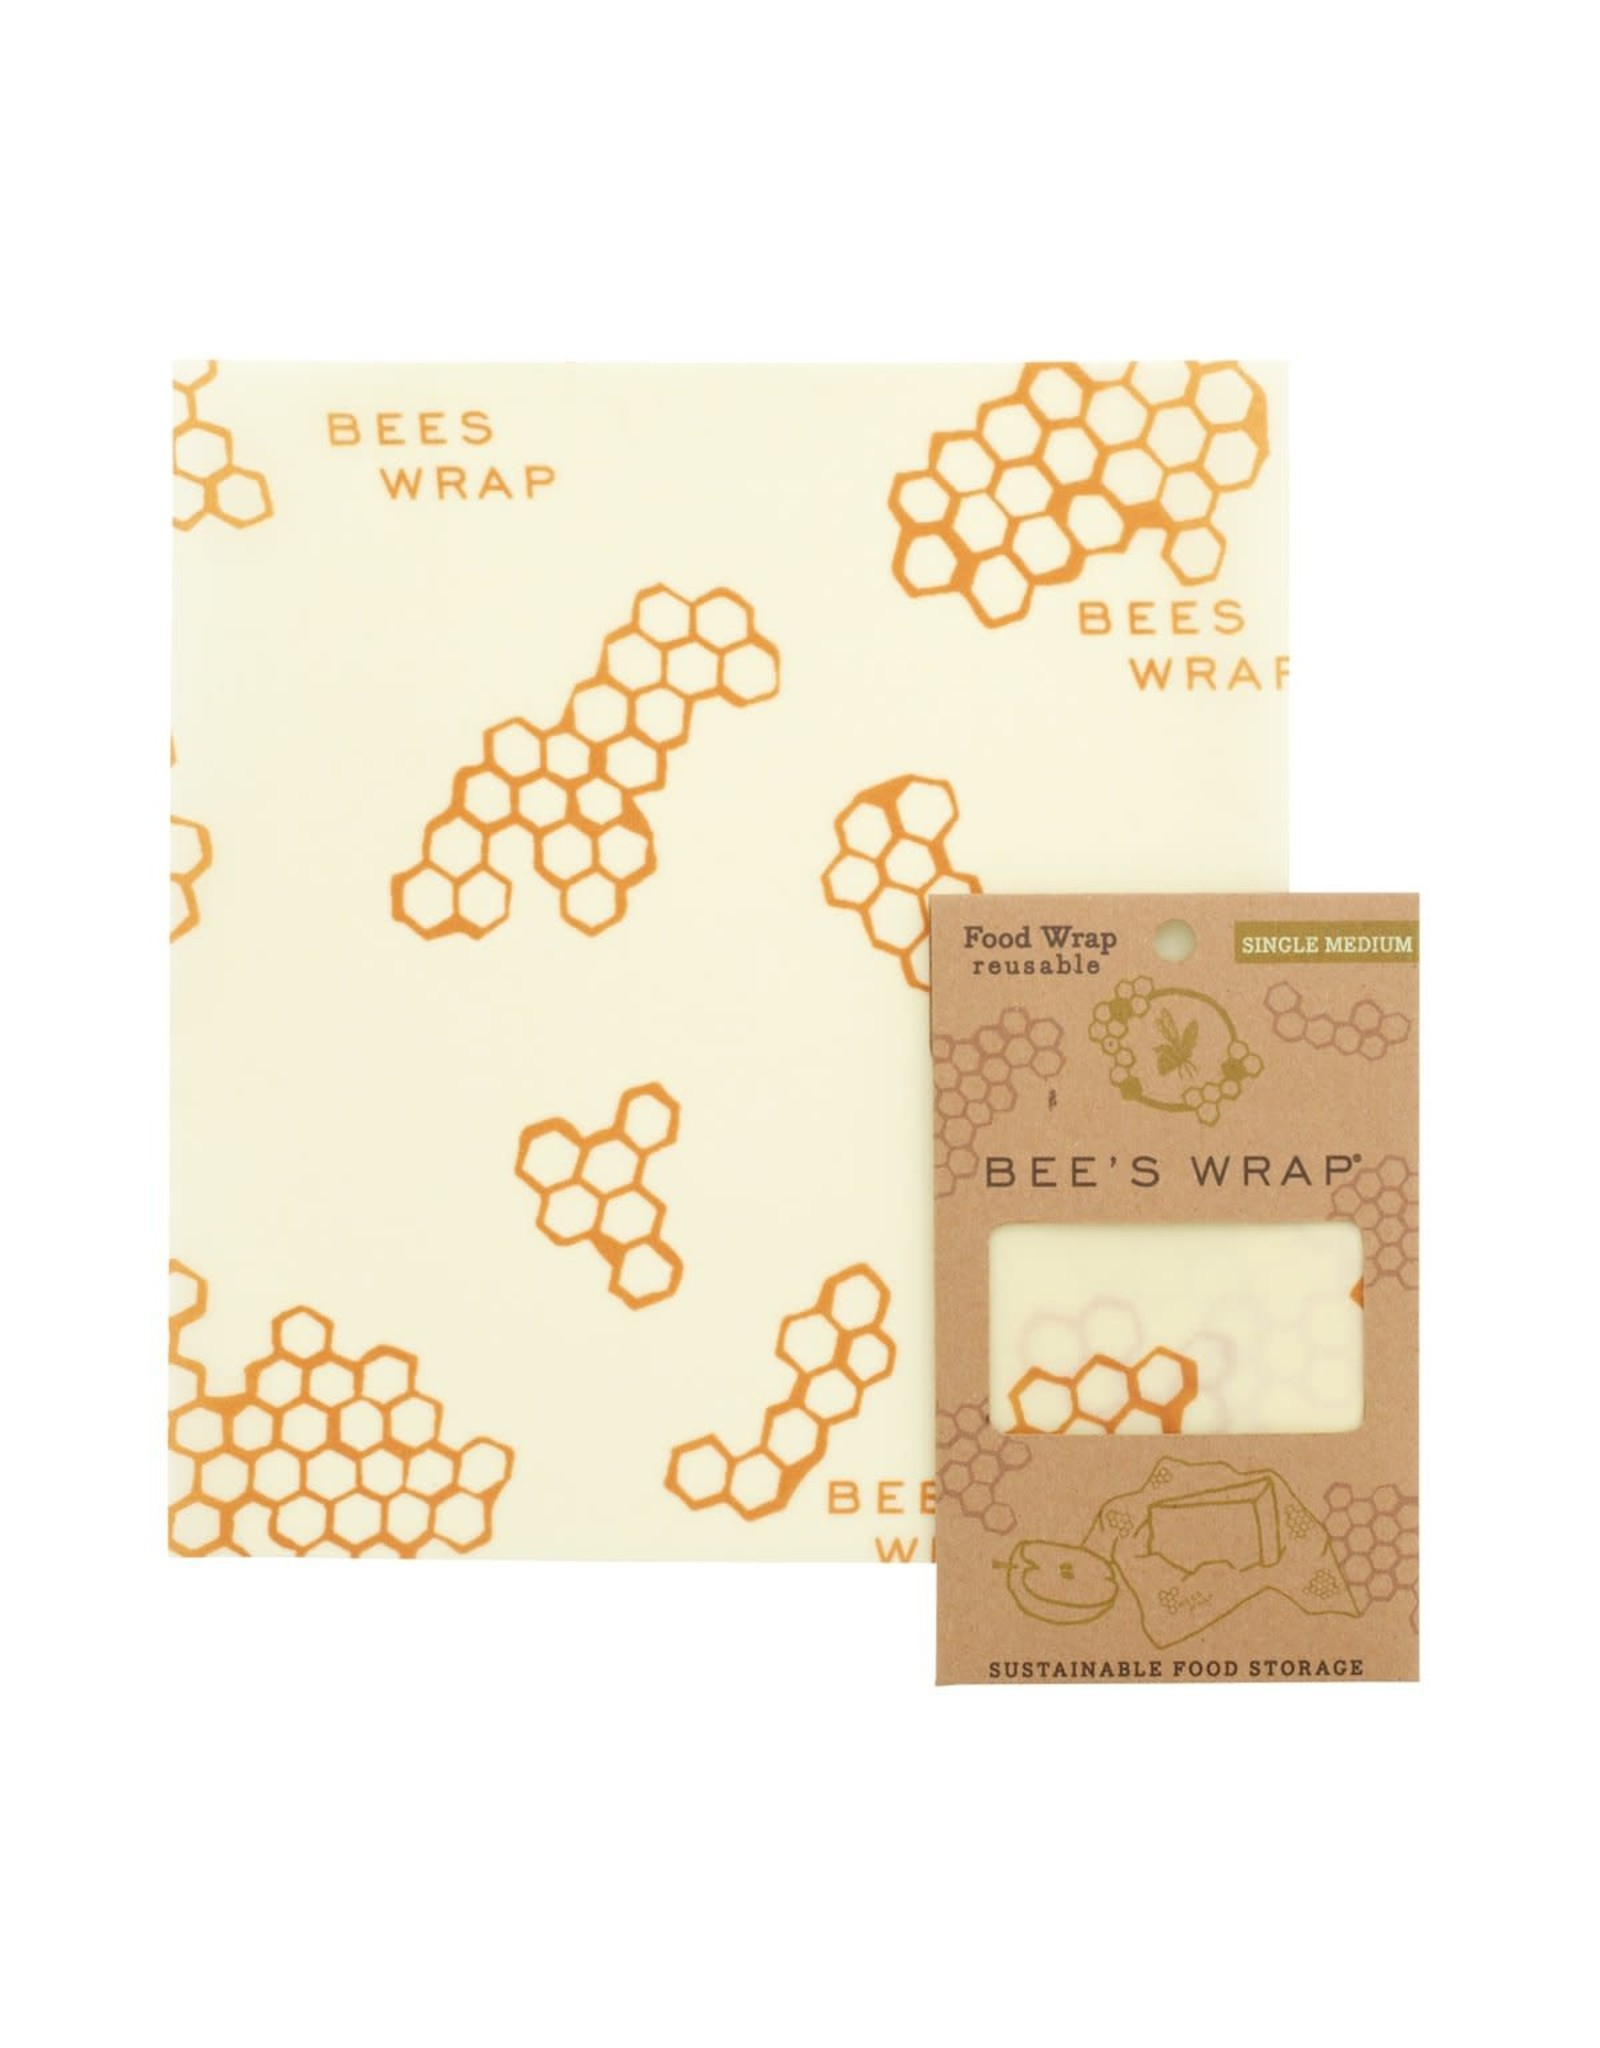 Bees Wrap Single Medium Wrap - Honeycomb